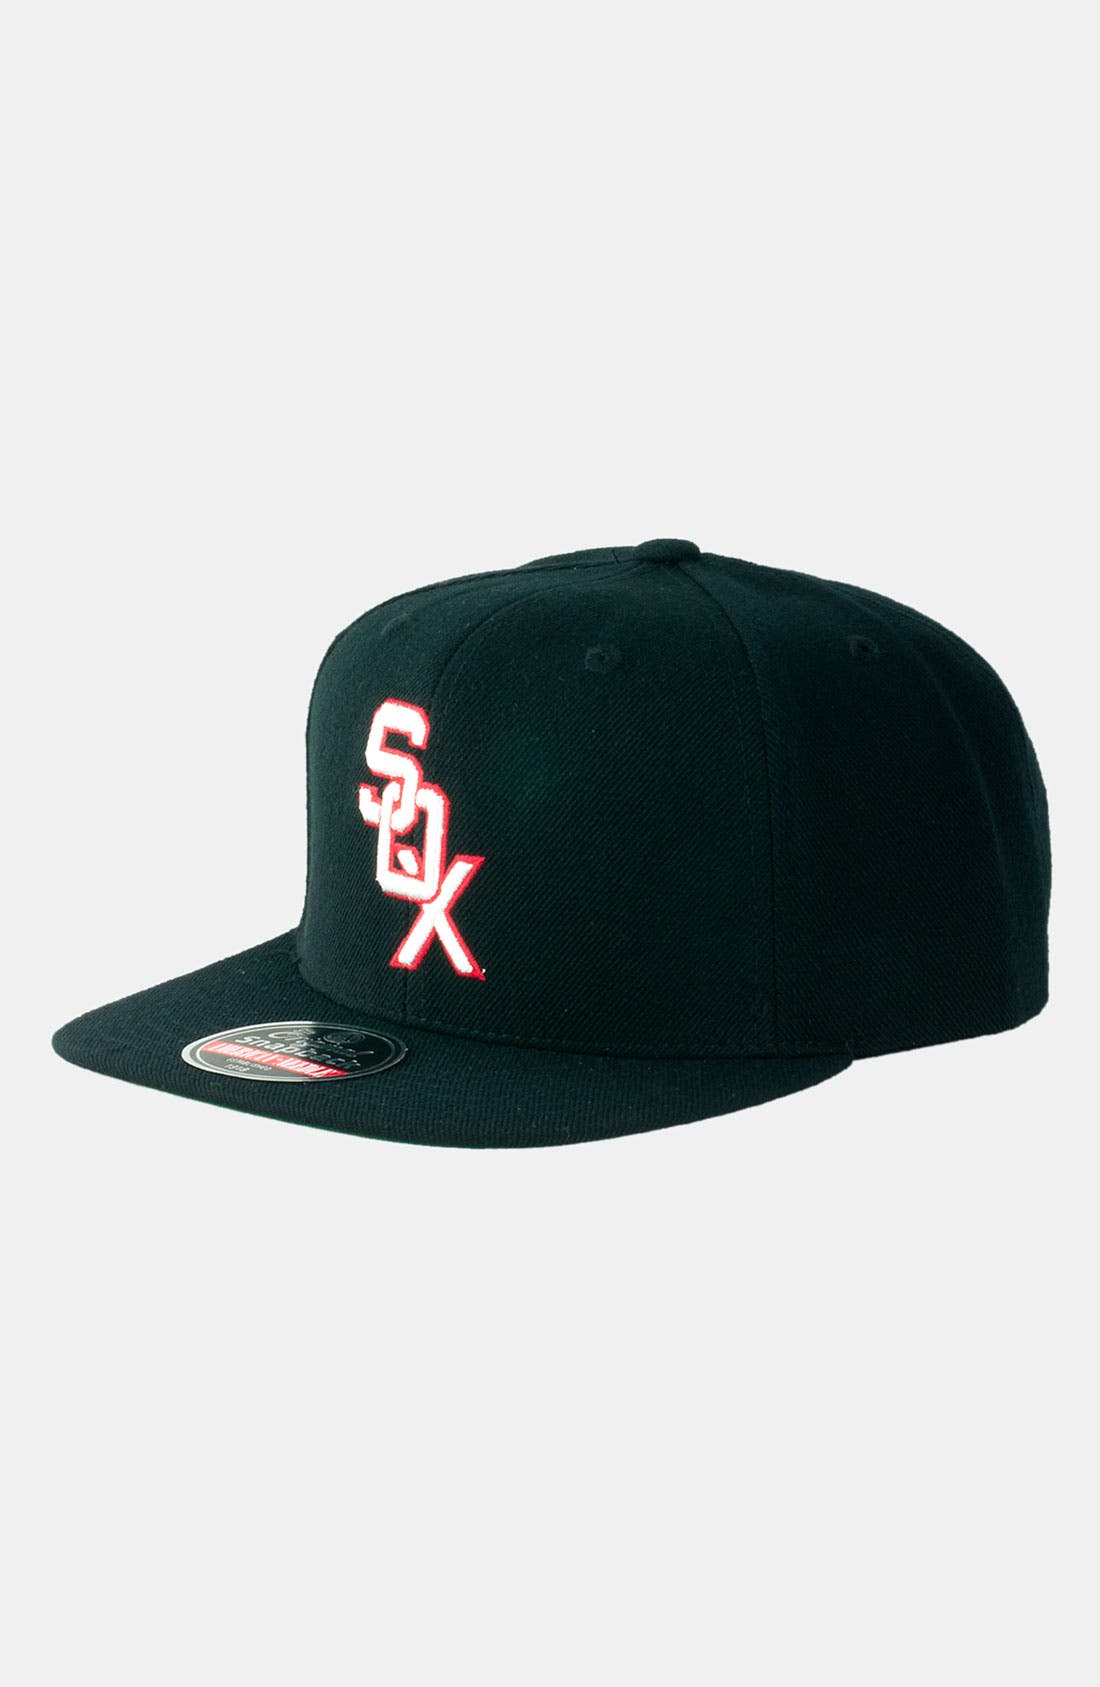 Main Image - American Needle 'Chicago White Sox - Cooperstown' Snapback Baseball Cap